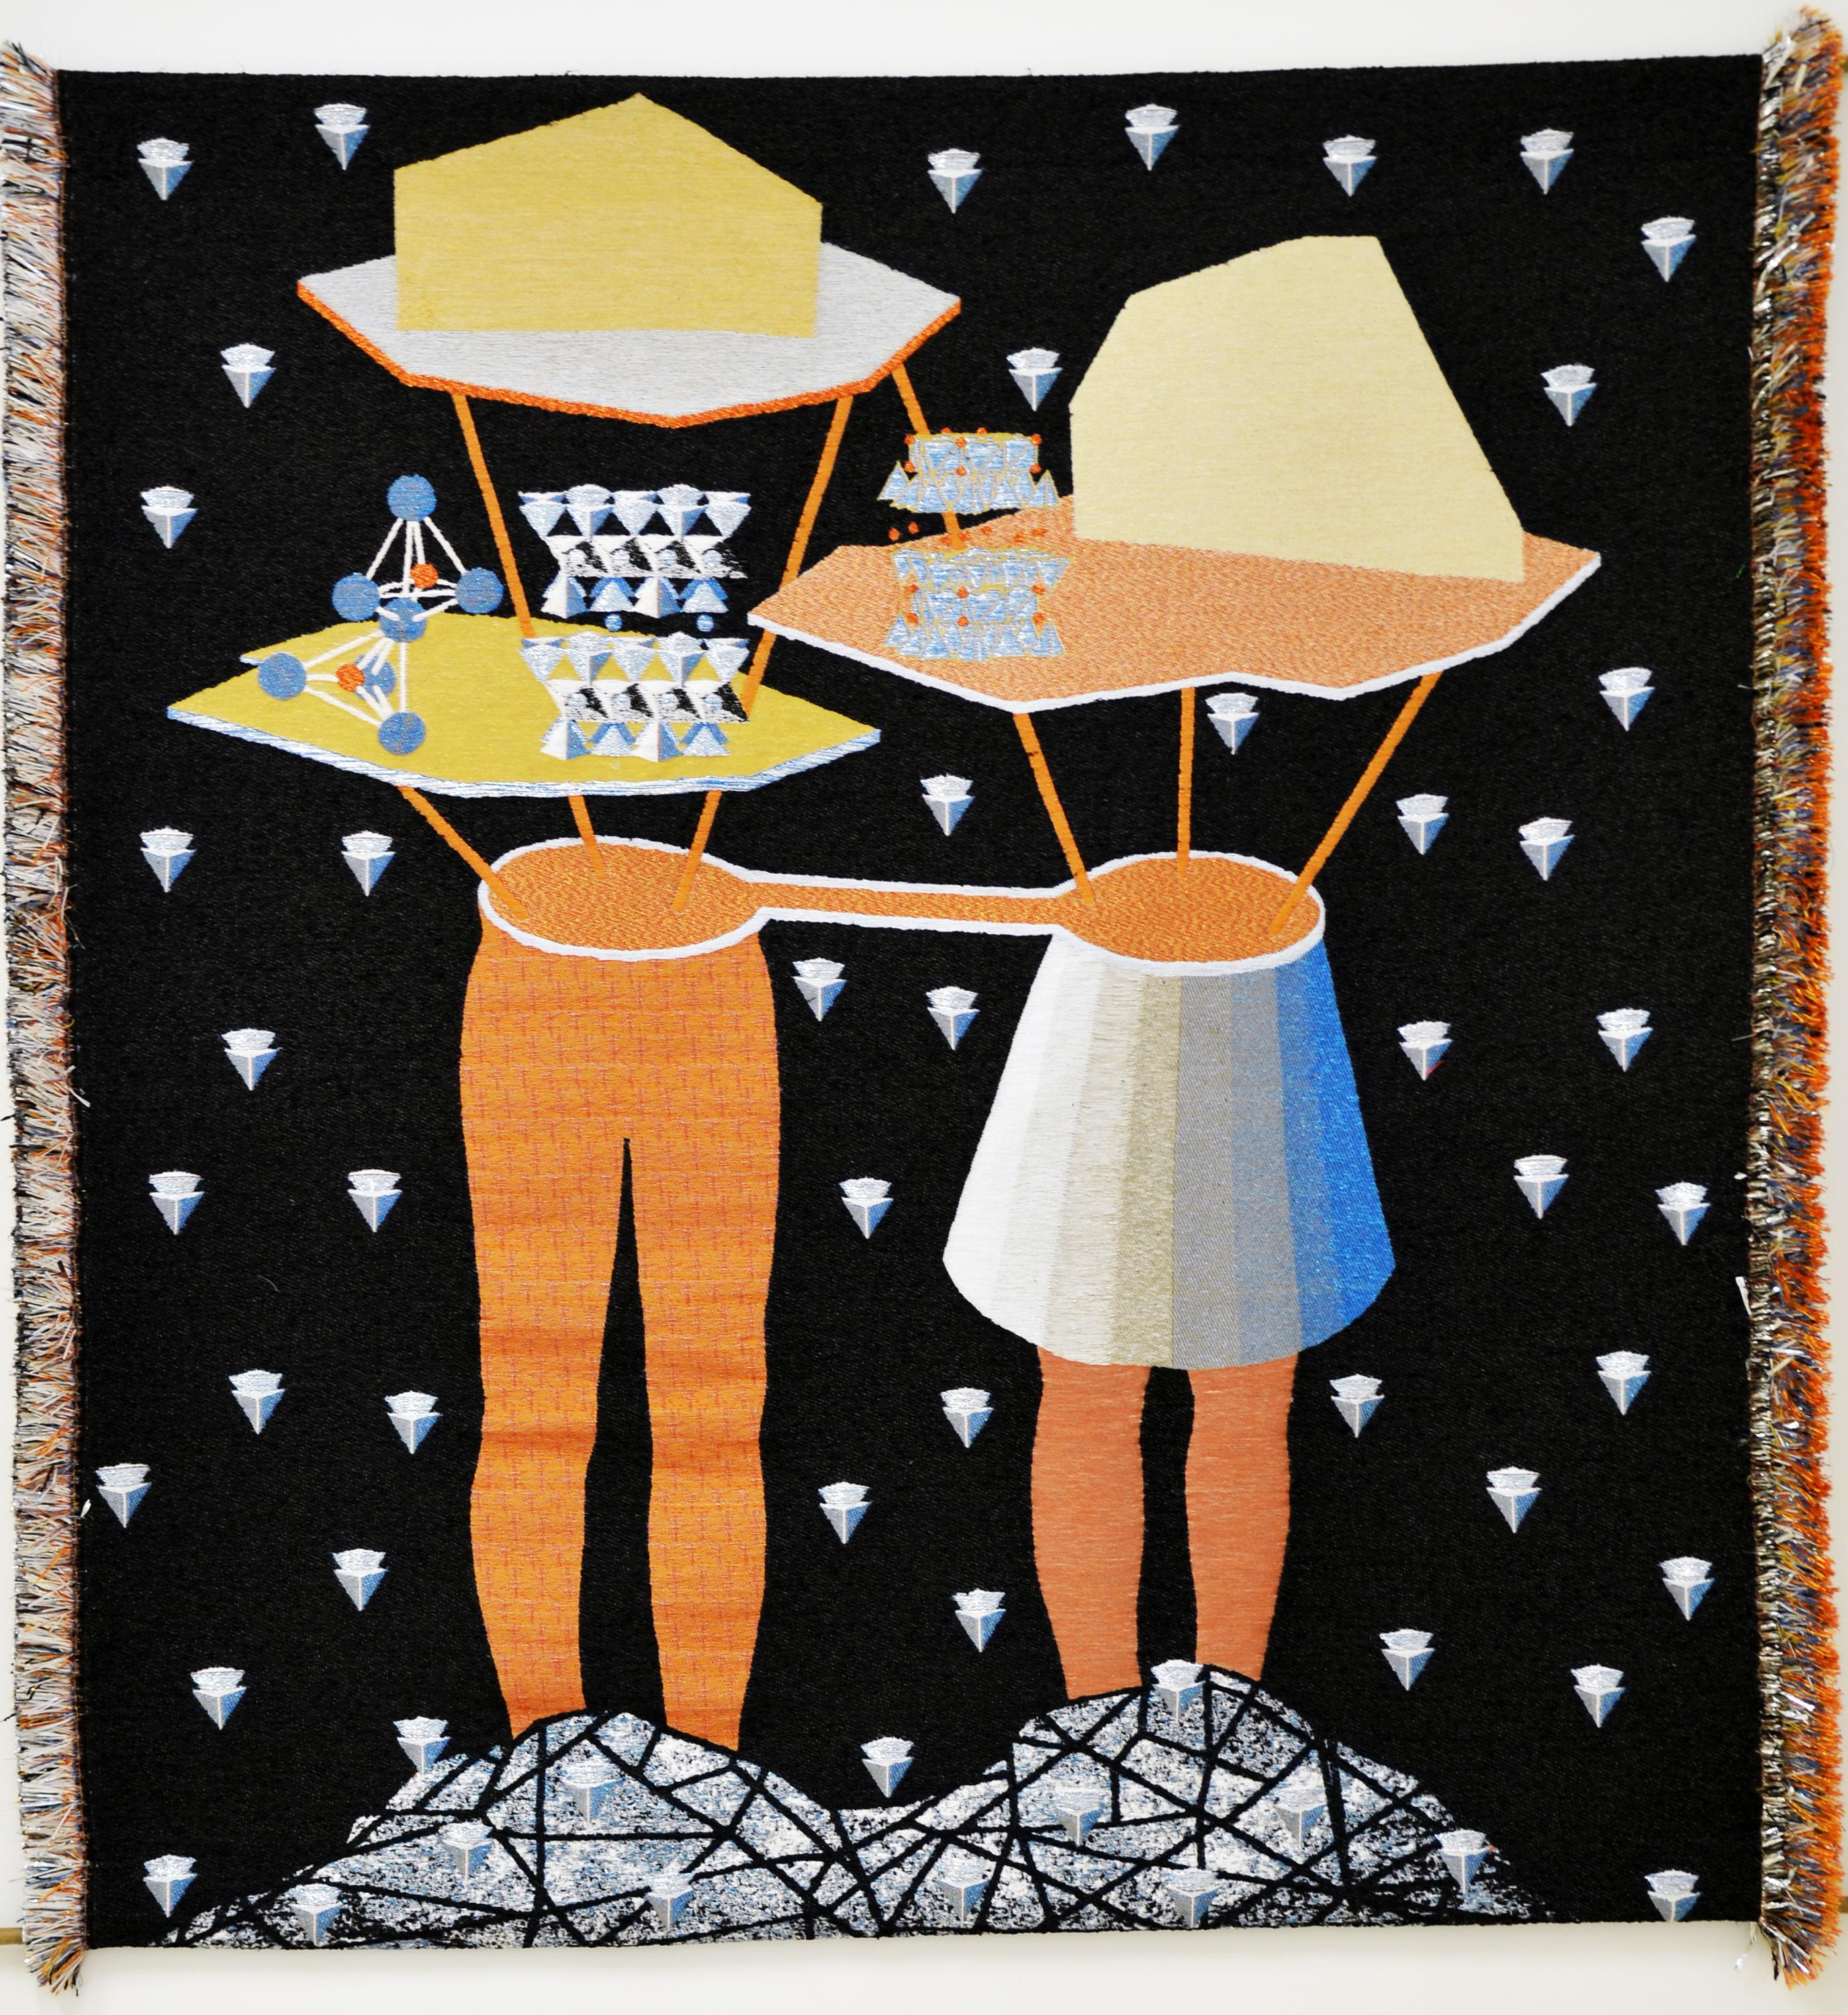 A black tapestry speckled with silver arrowheads depicts two pairs of orange legs, one wearing a skirt, with flat, geometric shapes in place of torsos and heads. The pair is connected at the hip and each stands on a crystalline mound.